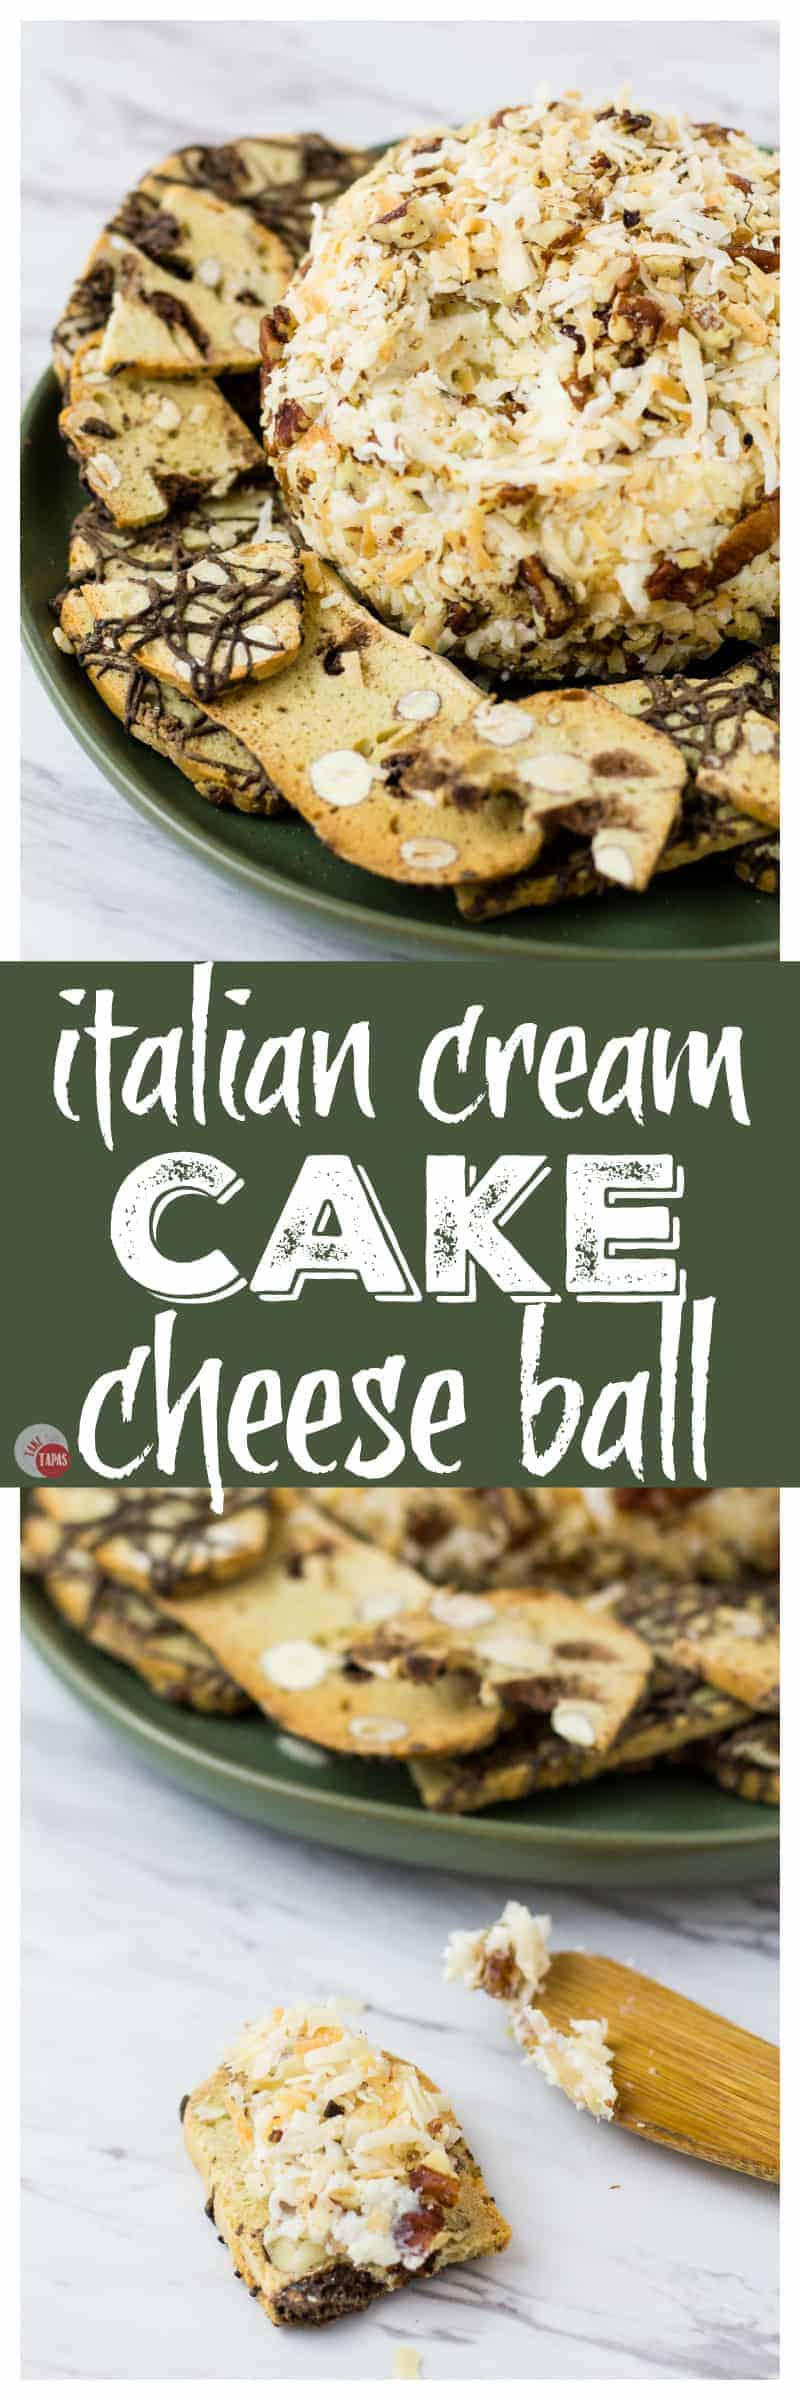 Dessert for a meal | Italian Cream Cake Cheese Ball | Take Two Tapas | #ItalianCreamCake #CheeseBall #Partyfoods #dessert